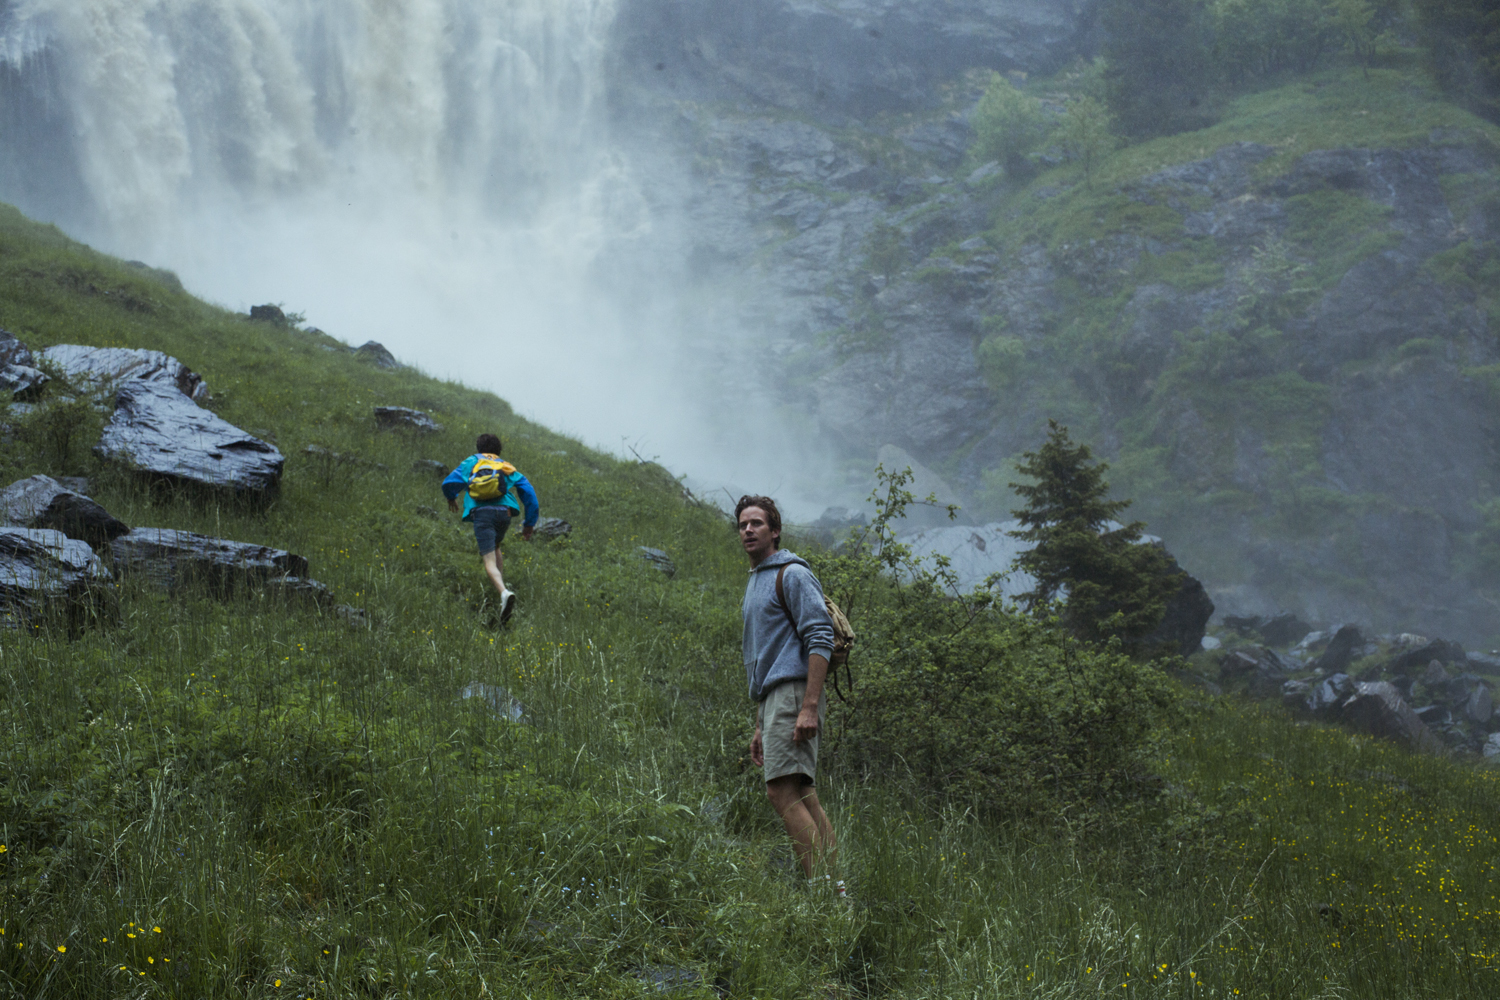 Armie Hammer and Timothée Chalamet in Call Me by Your Name (2017). A vast hillside in Italy with a rushing waterfall in the background, Elio, a teenage boy wearing a blue raincoat and a yellow backpack, heads off towards the waterfall. In the foreground is his companion, the older Oliver, wearing a grey hoodie and shorts, looks back towards the camera.